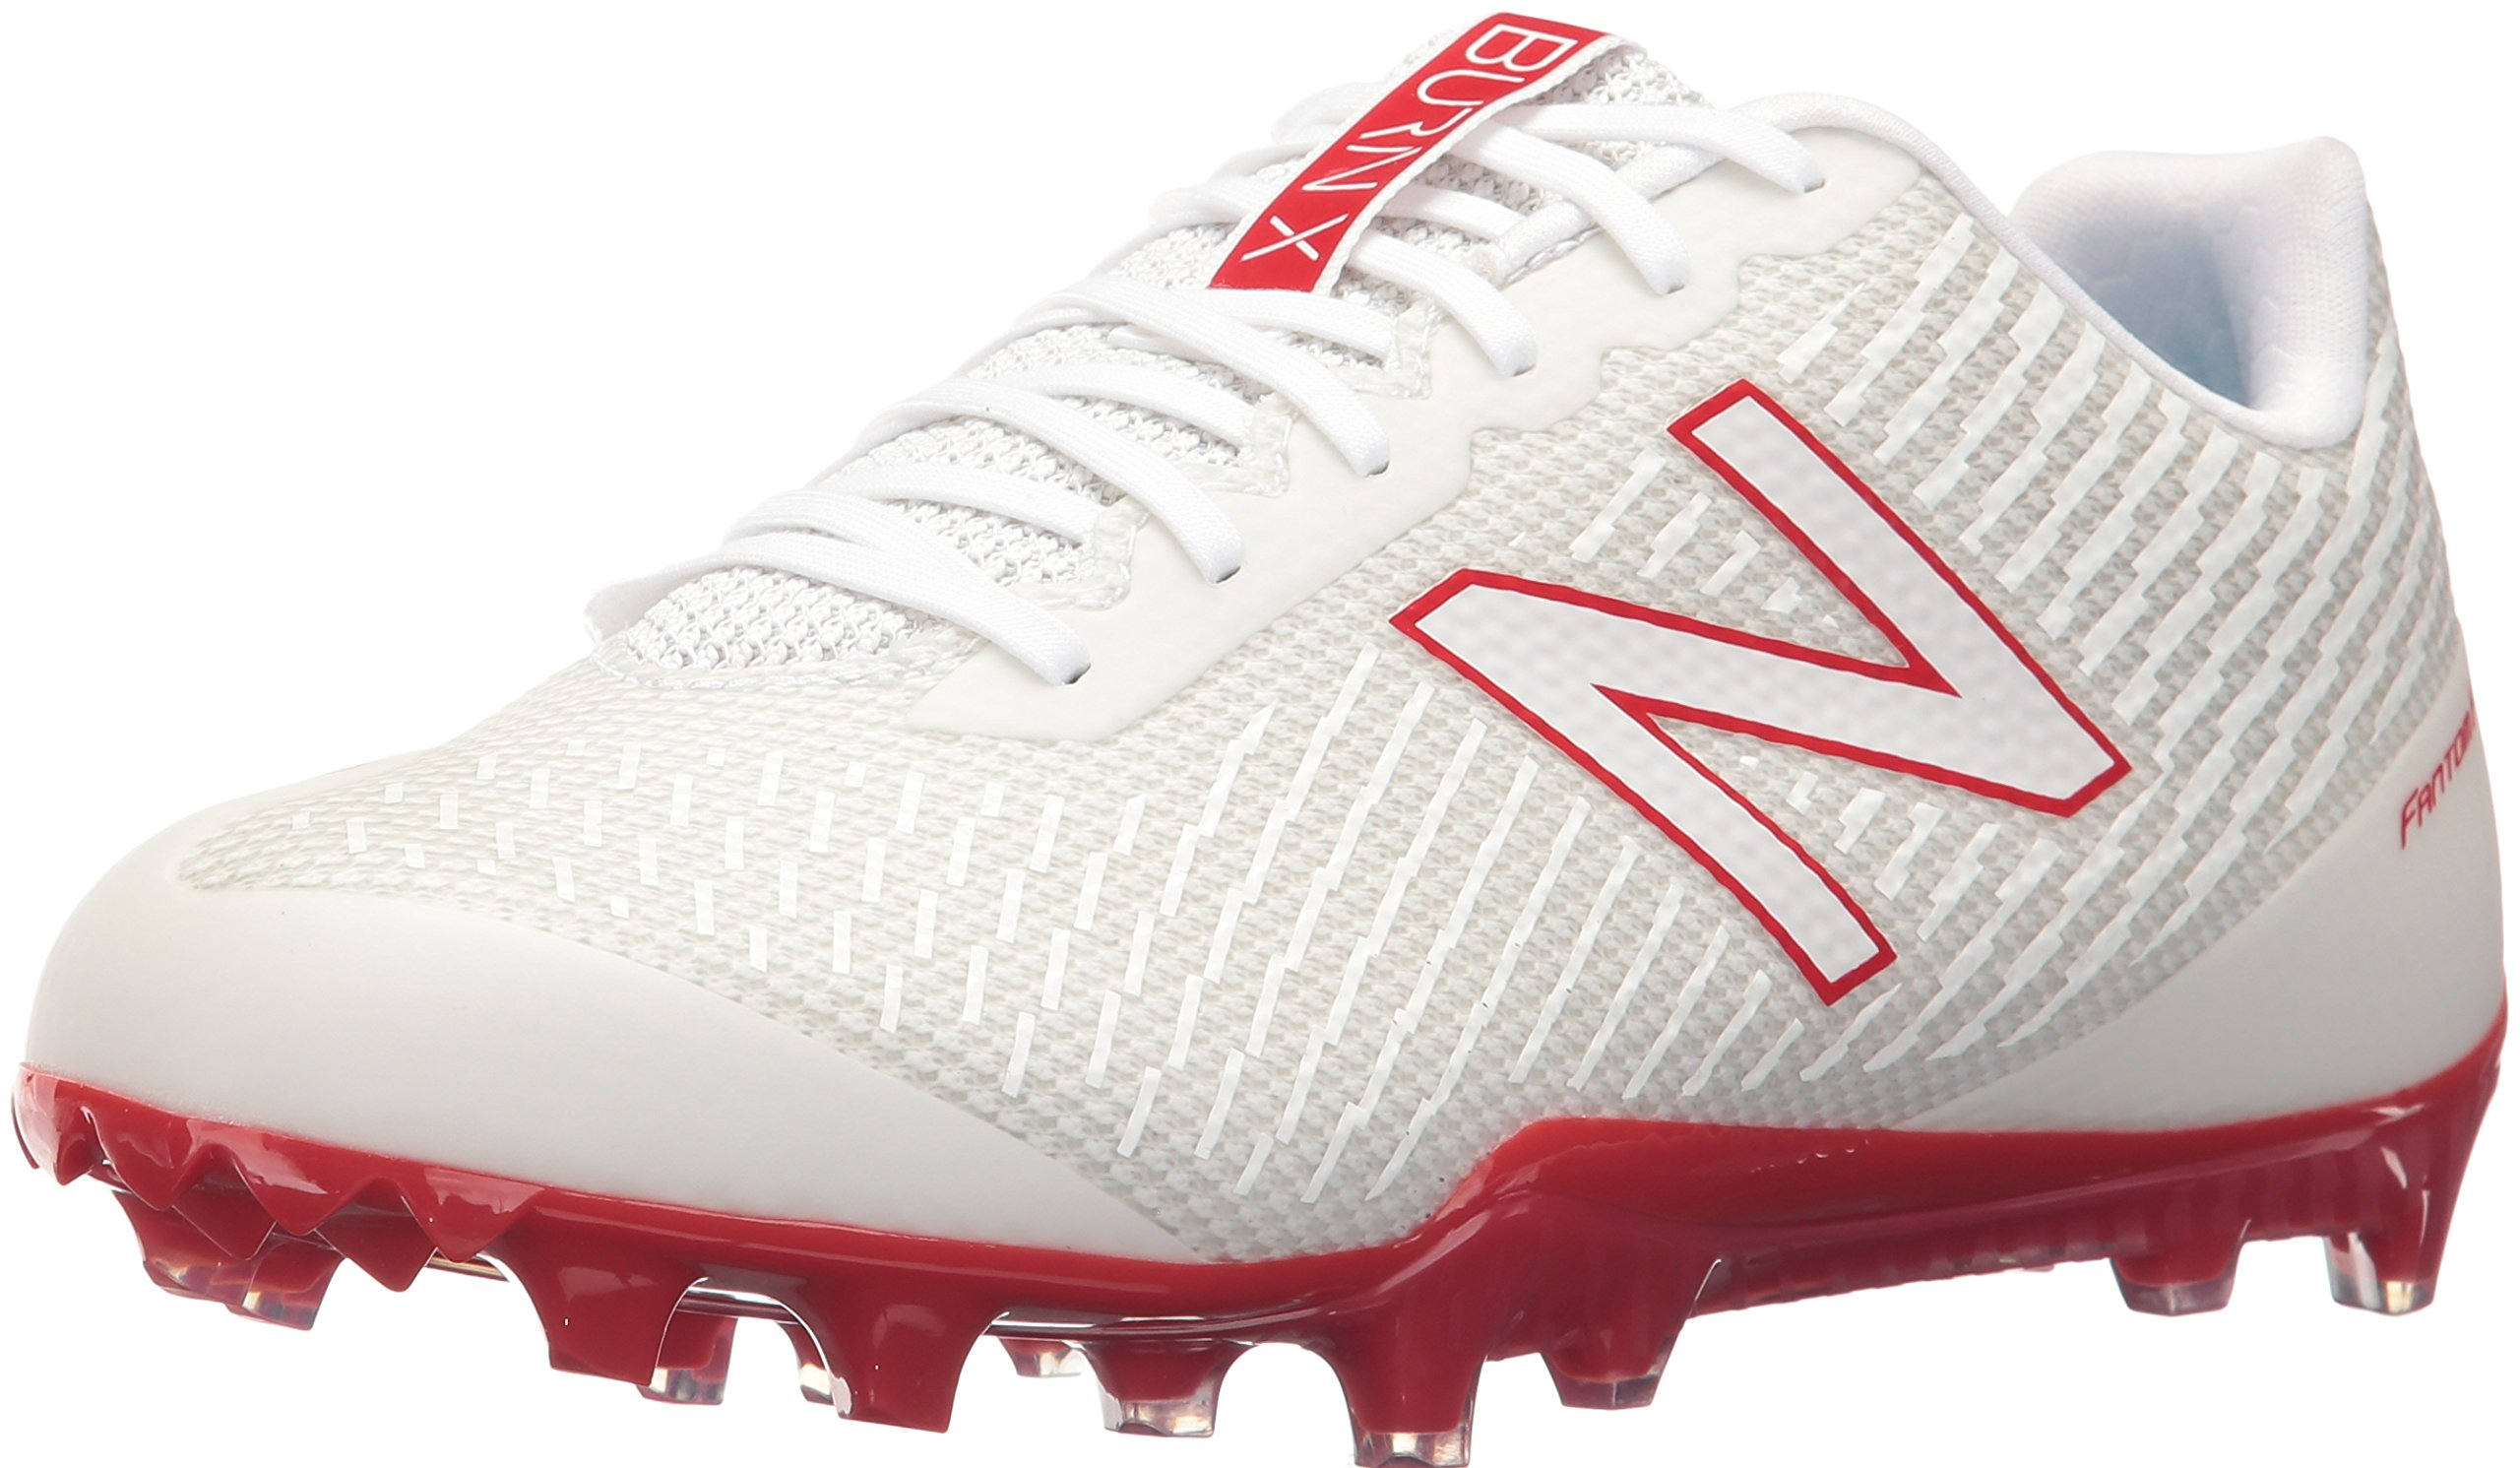 New Balance Men's Burn Low Speed Lacrosse Shoe, White/Red, 11.5 D US by New Balance